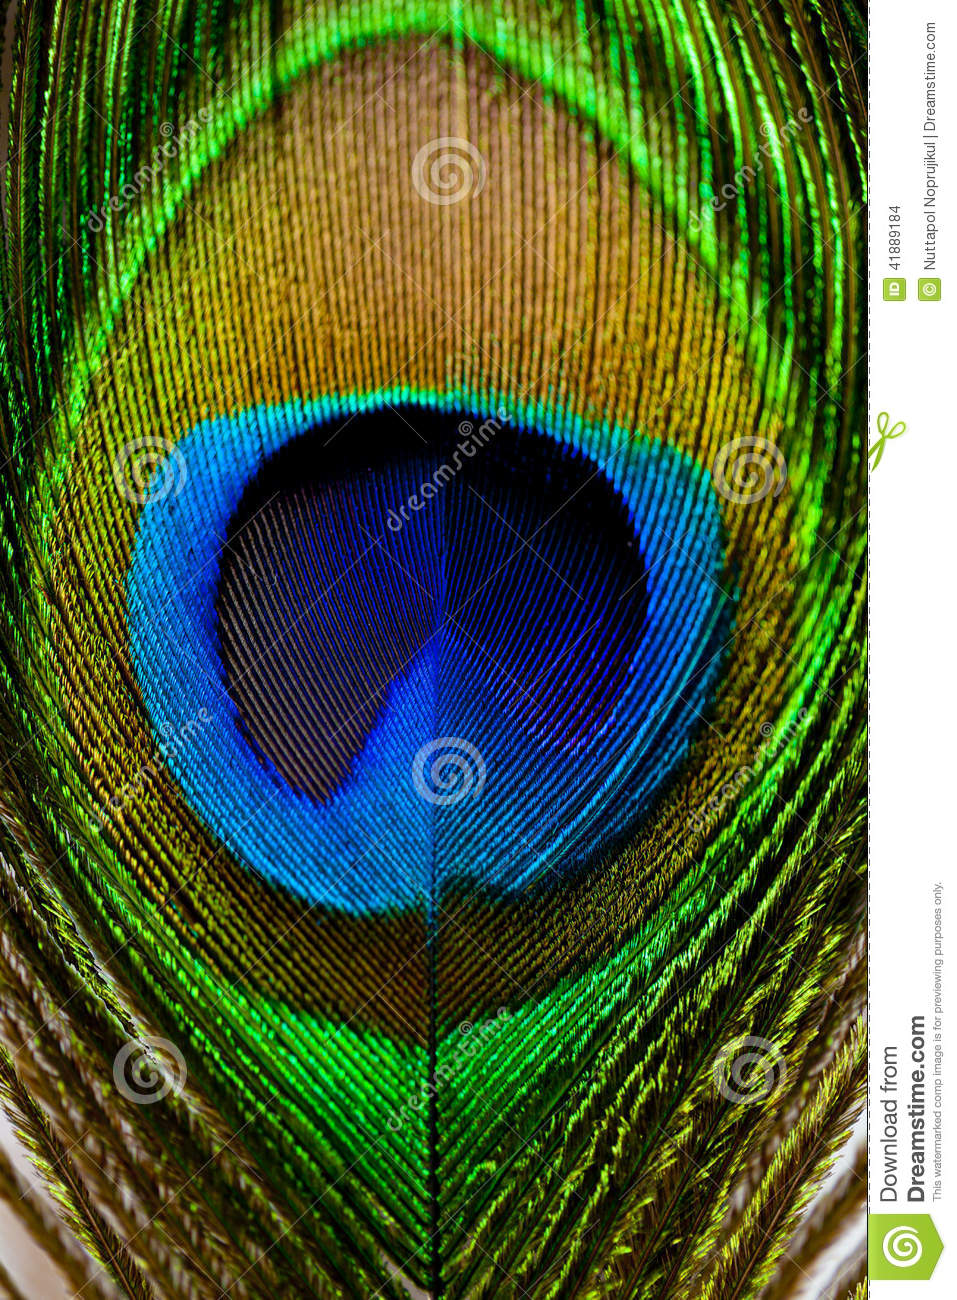 Macro Image Of Peacock Feather/Peacock Feather Stock Photo - Image: 41889184